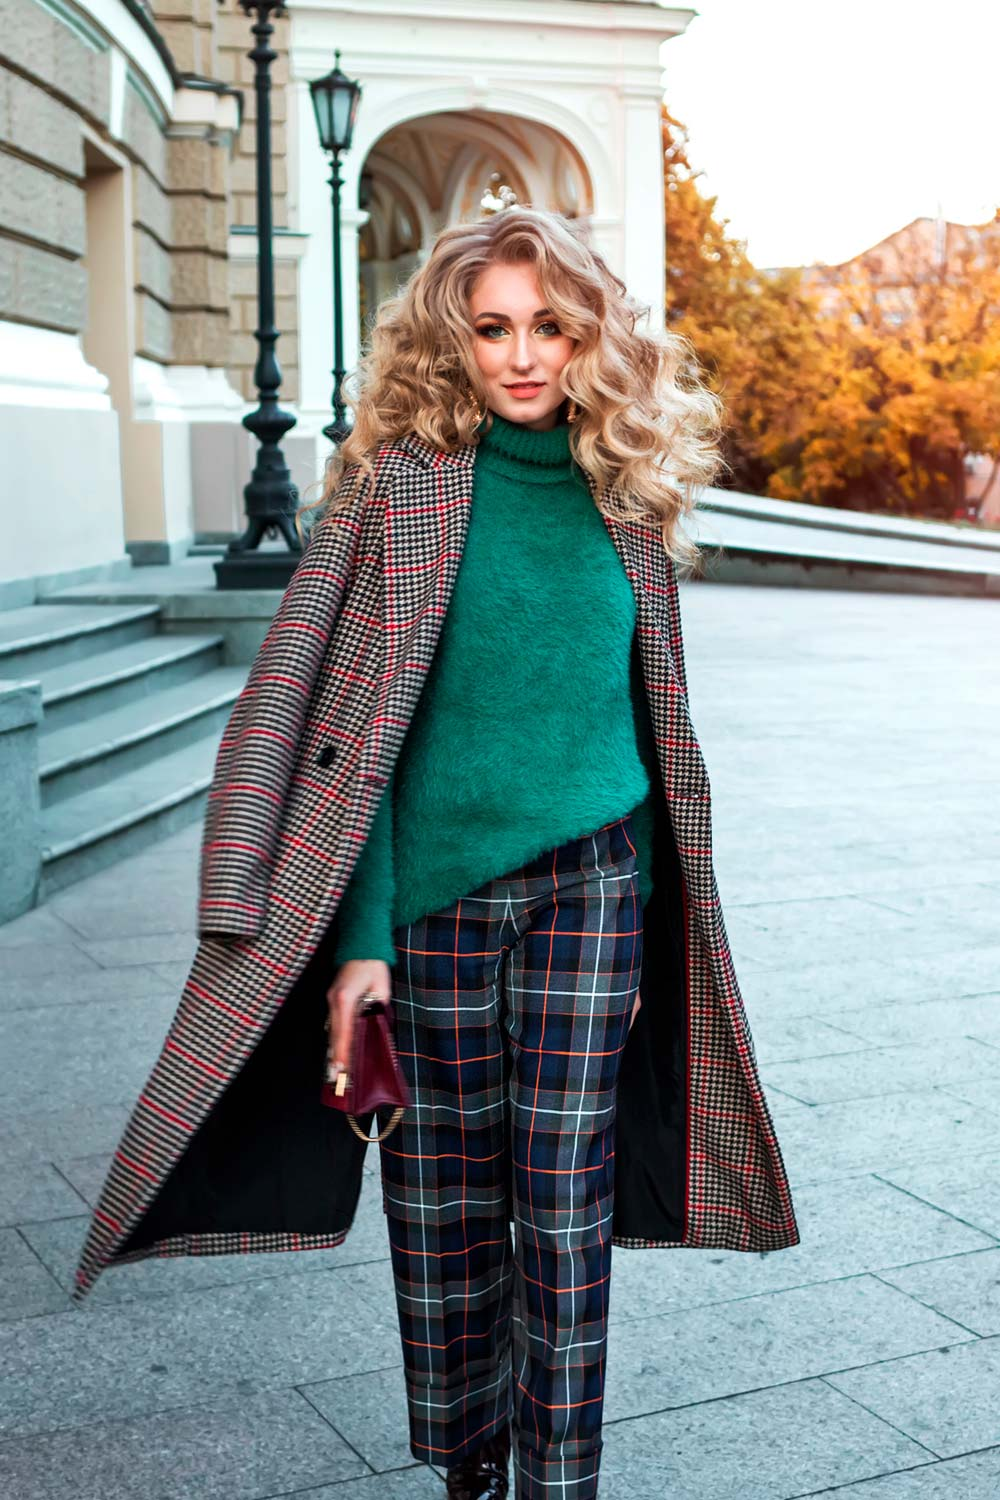 Classy Coats Winter Outfits